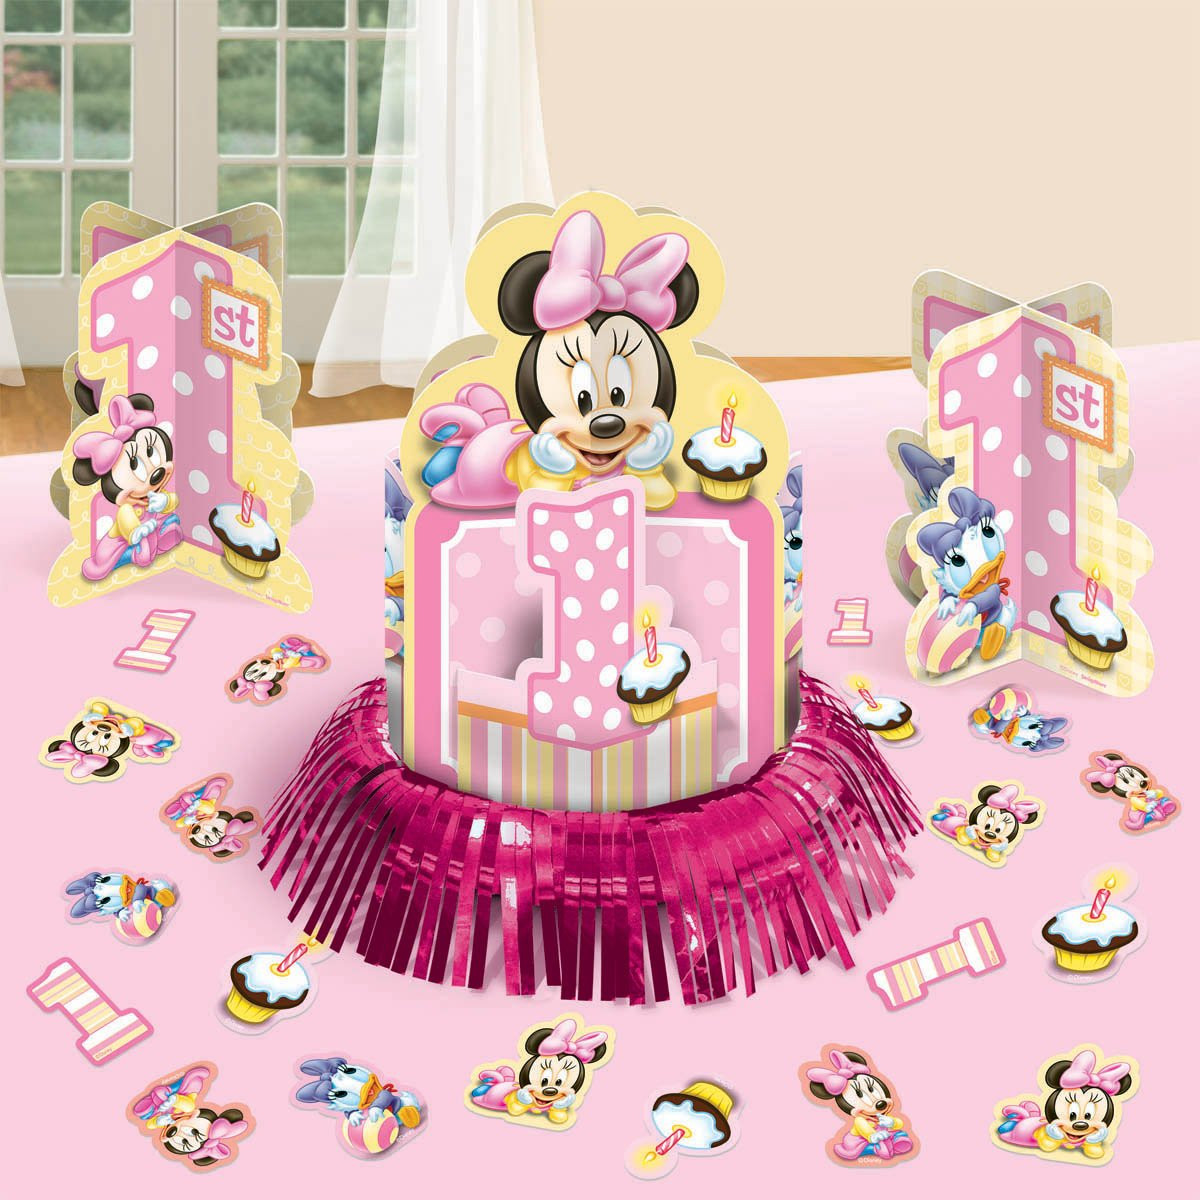 Best ideas about Minnie Mouse First Birthday Decorations . Save or Pin Baby Minnie Mouse Decorations Now.